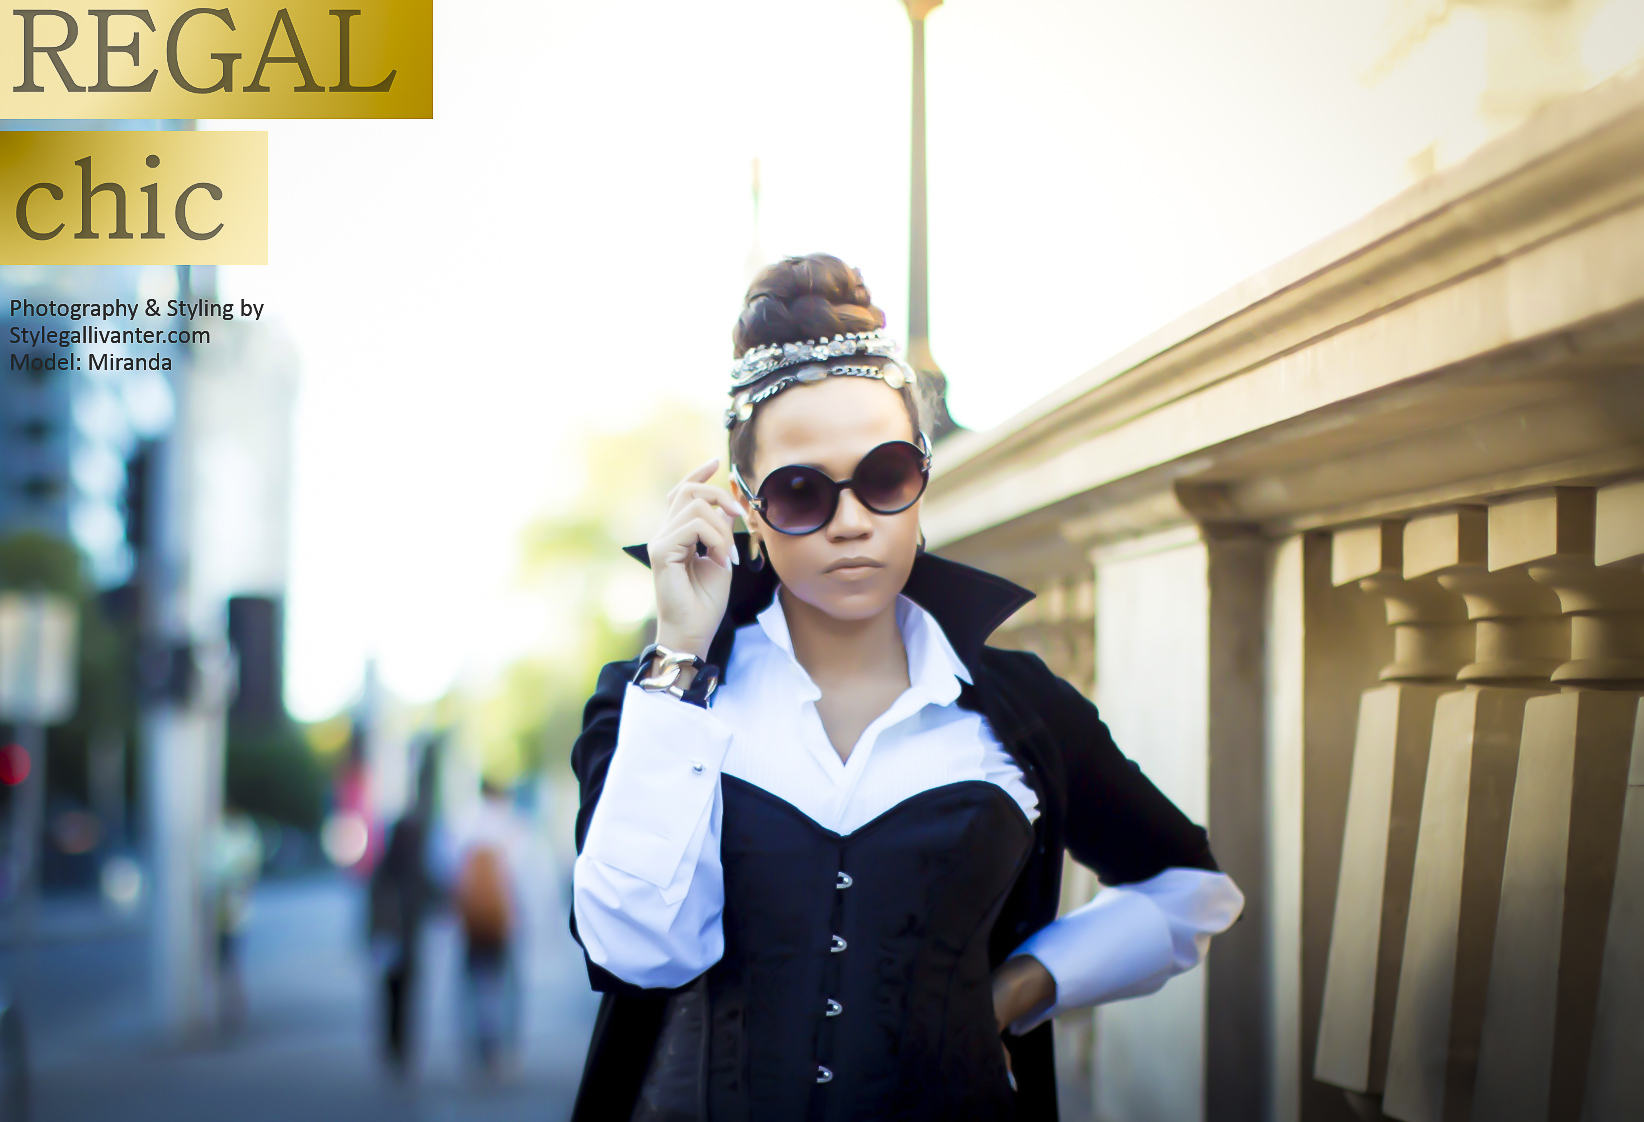 regal-CHIC_copyright-stylegallivanter.com_not-to-be-used-without-permission_top-fashion-bloggers-melbourne-2015_africa's-top-fashion-blogs_melbourne's-best-fashion-personal-style-bloggers---28